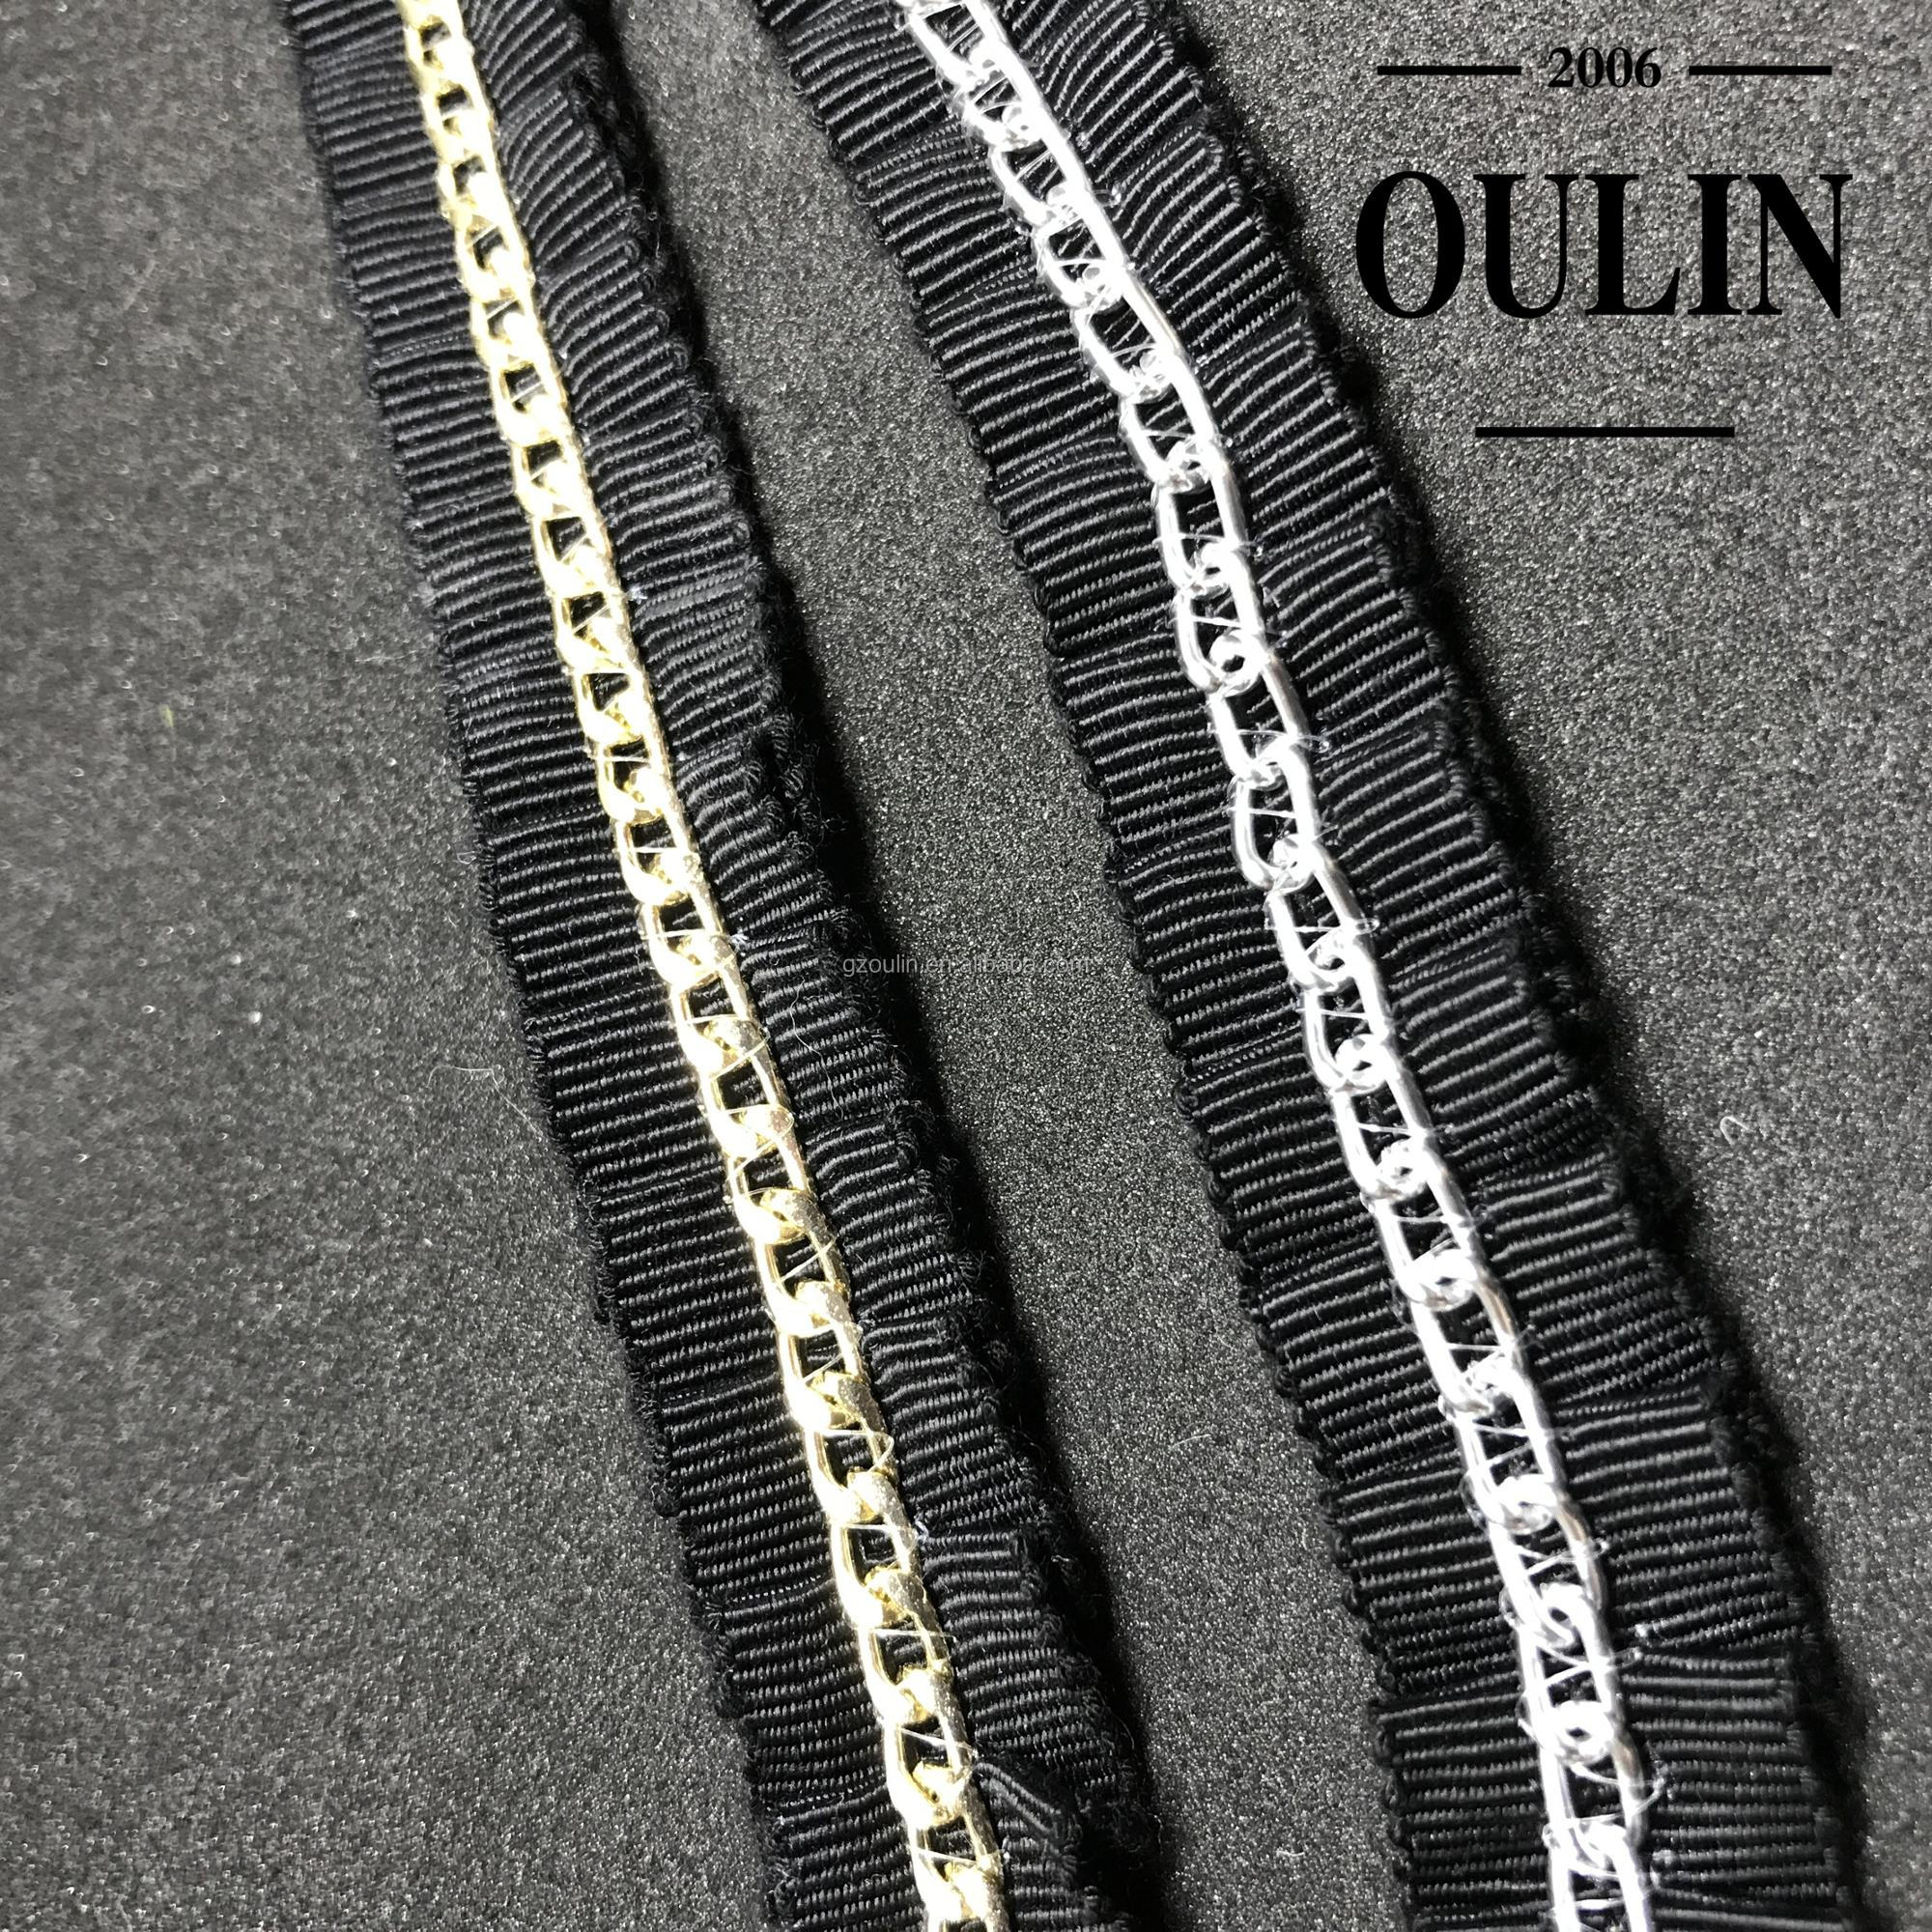 Fold lace trim with Chain trims new designs metal chain trims used on garm